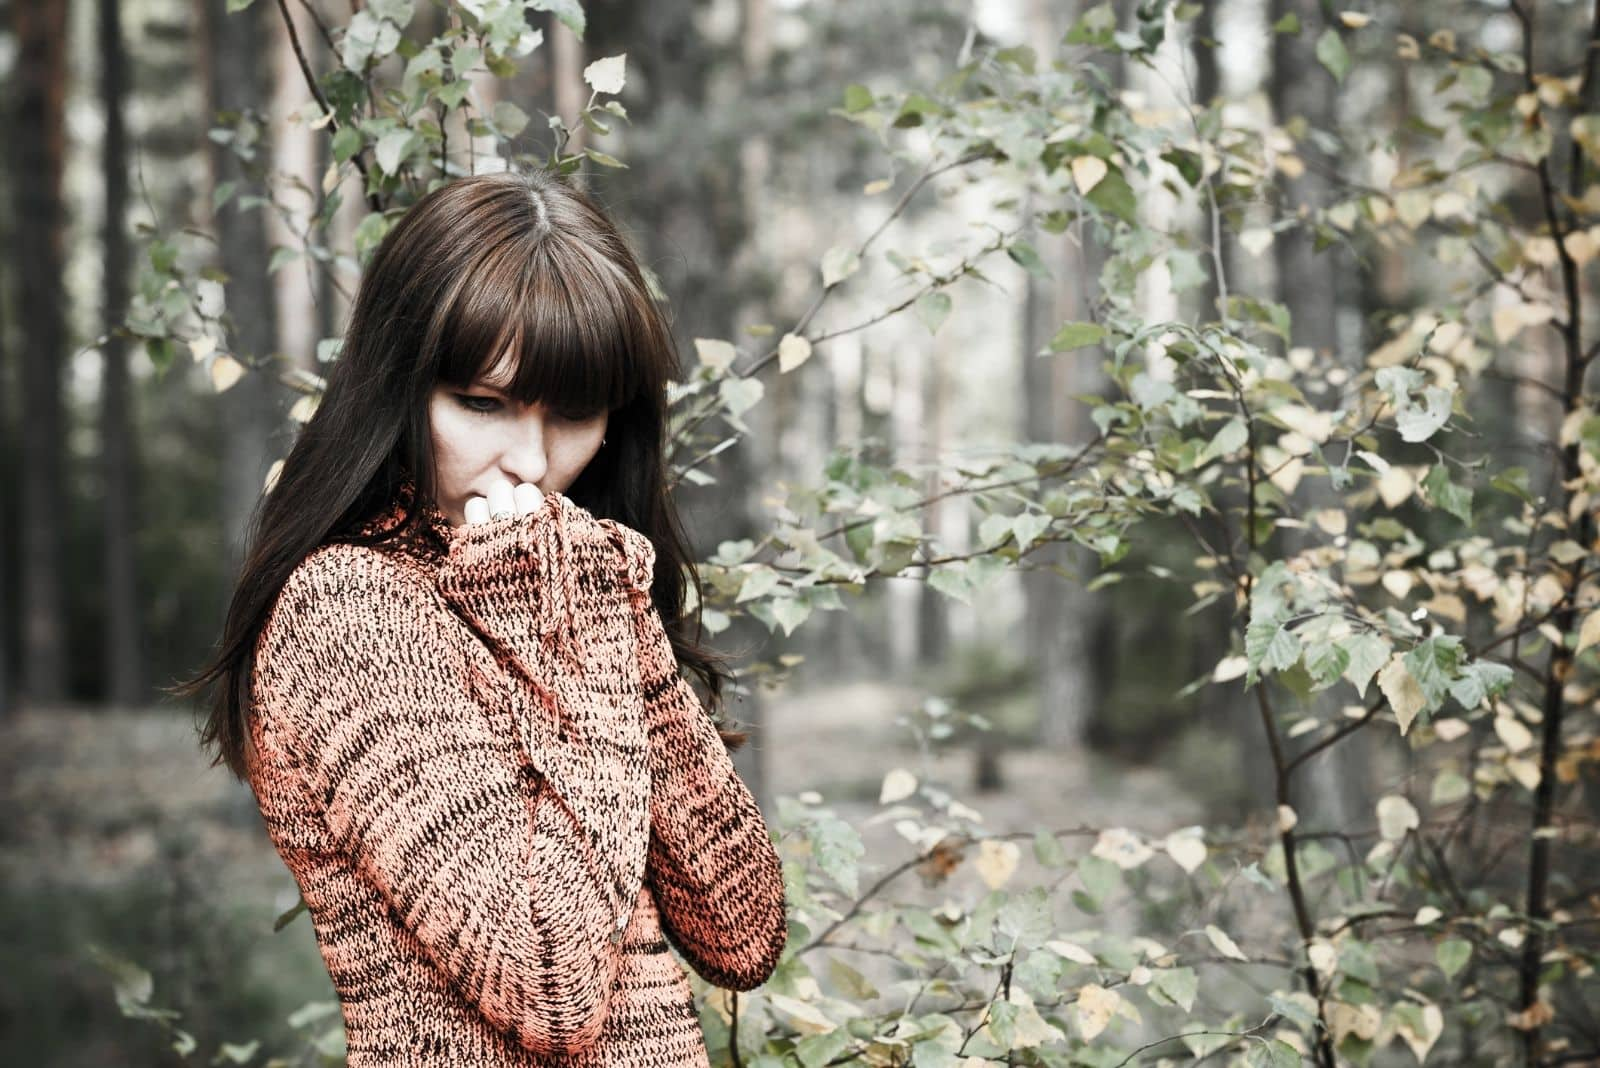 pensive woman thoughtful wearing sweater standing in the middle of the forest